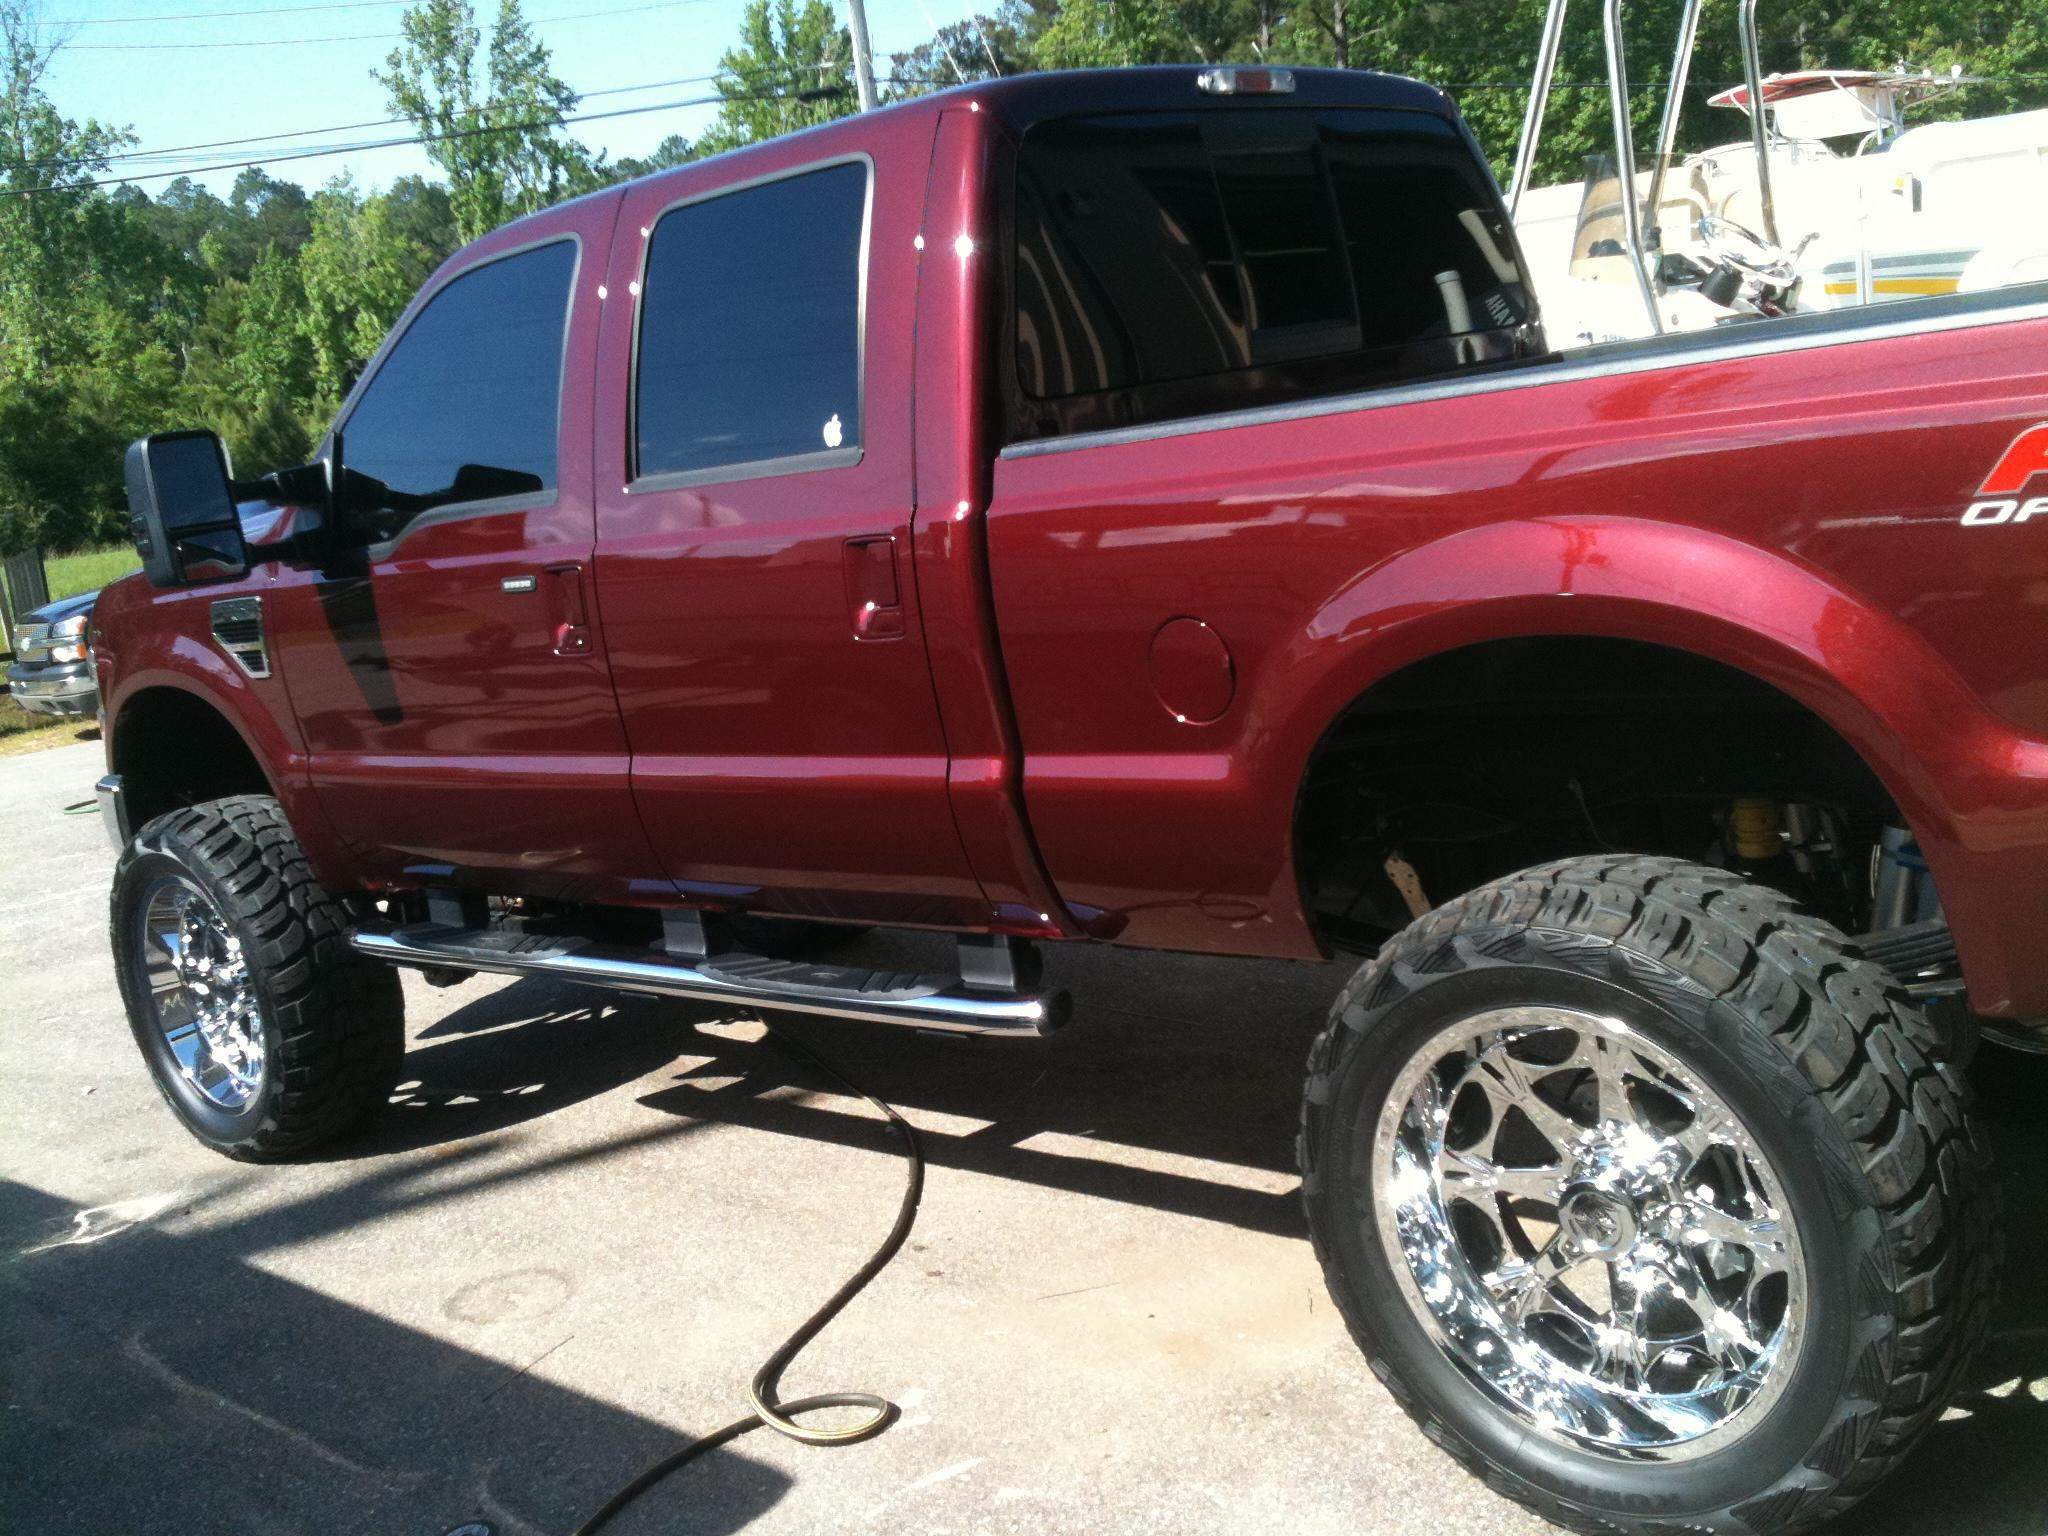 Blackfyncustoms1 2010 Ford F250 Super Duty Crew Cablariat